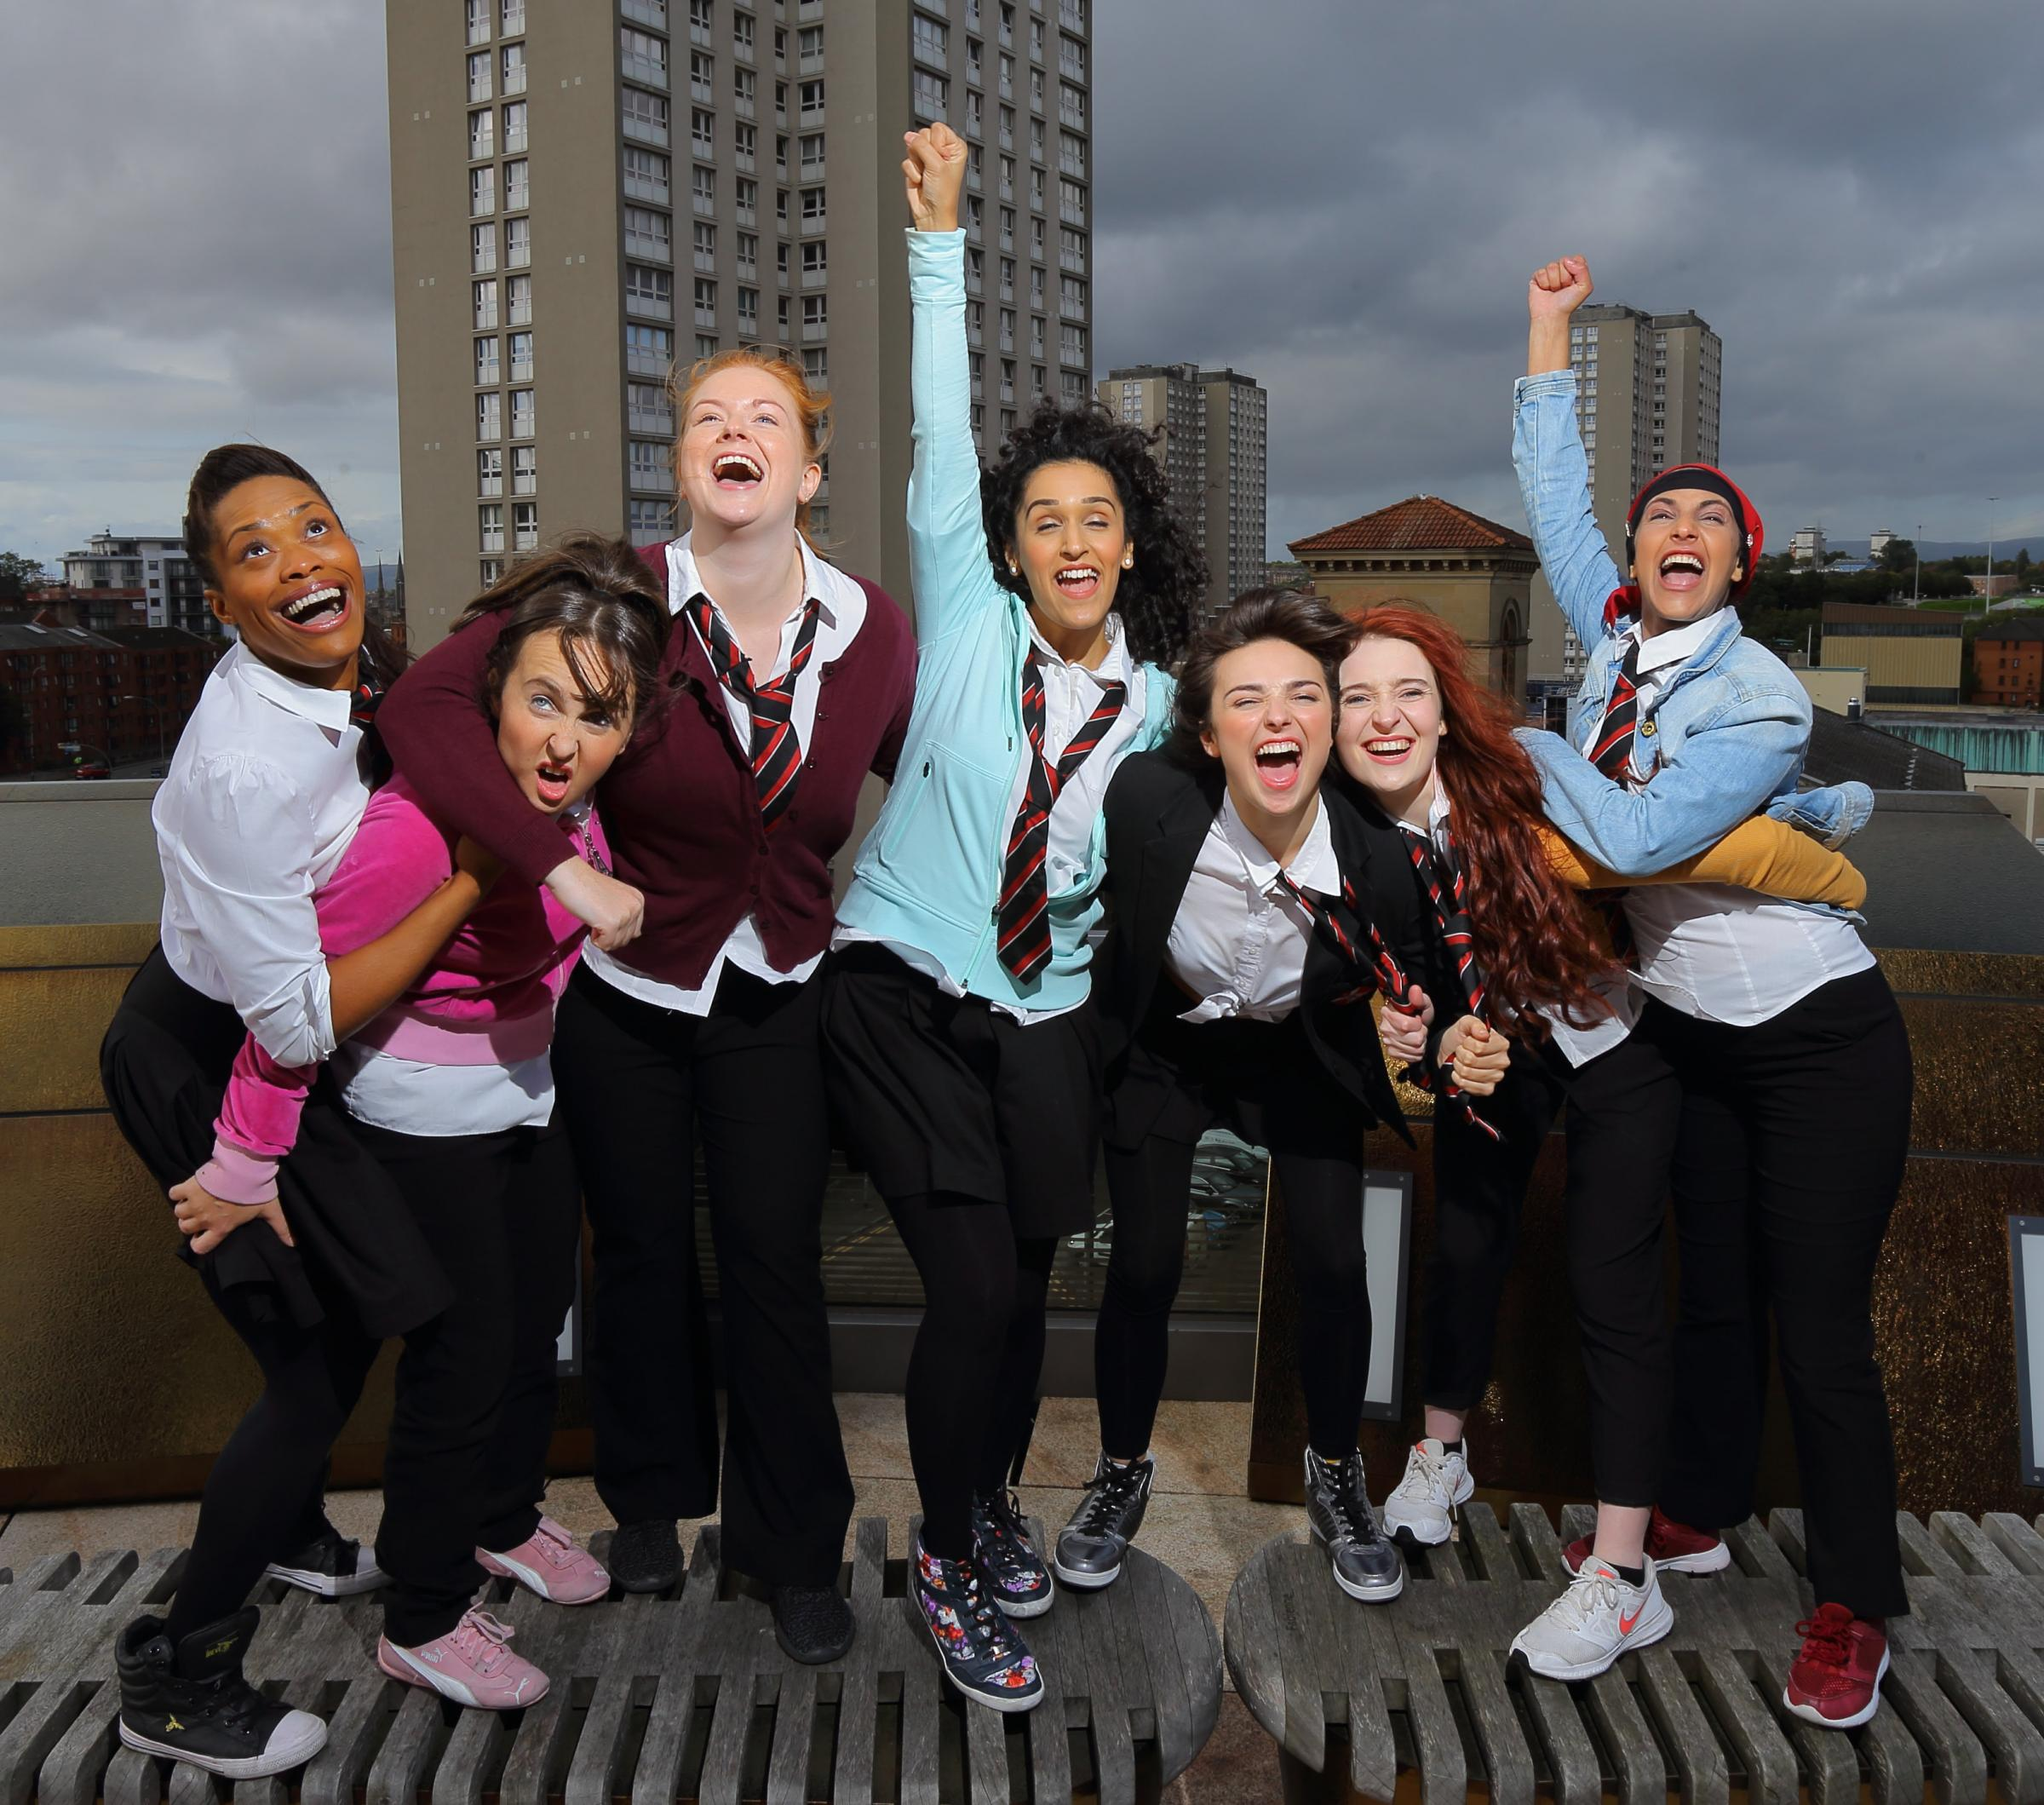 Glasgow Girls cast members, from left: Patricia Panther, Stephanie McGregor, Kara Swinney, Sophia Lewis, Chaira Sparks, Shannon Swan, Aryana Ramkhalawon. Photograph: Colin Mearns